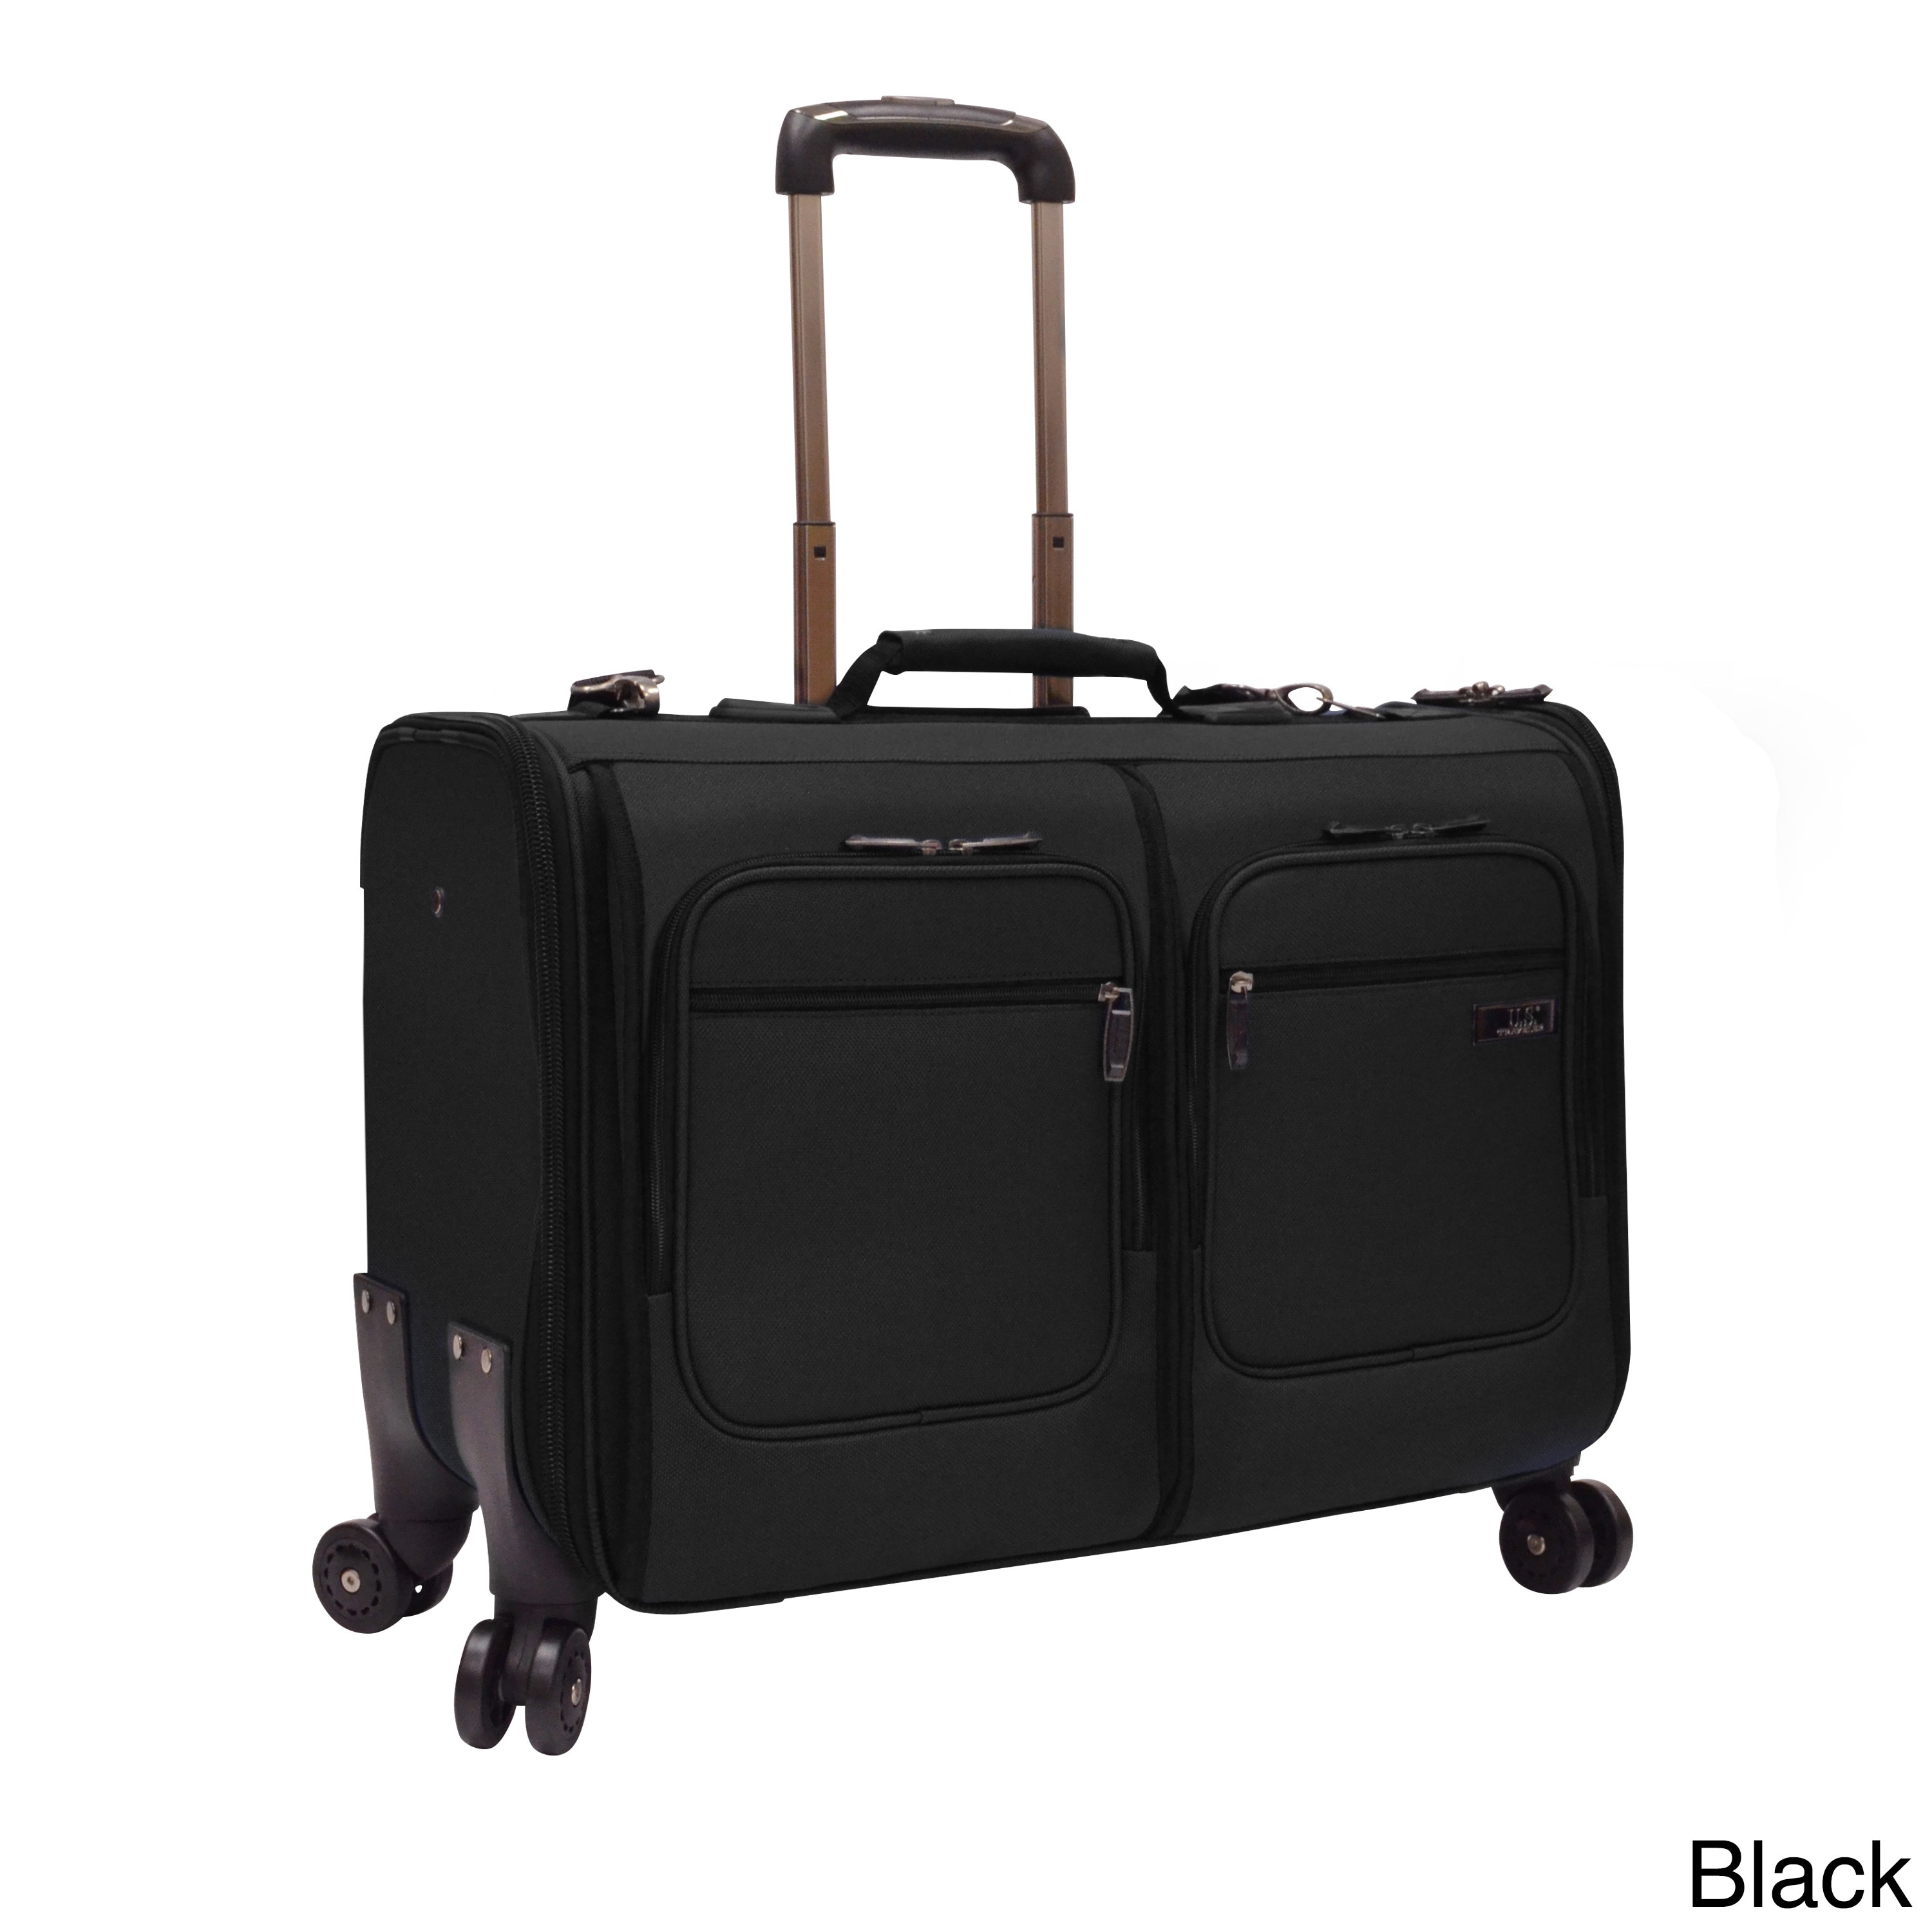 358bff7d3 Shop U.S. Traveler by Traveler's Choice Stimson Carry-on Spinner Garment Bag  - Free Shipping Today - Overstock - 9283974